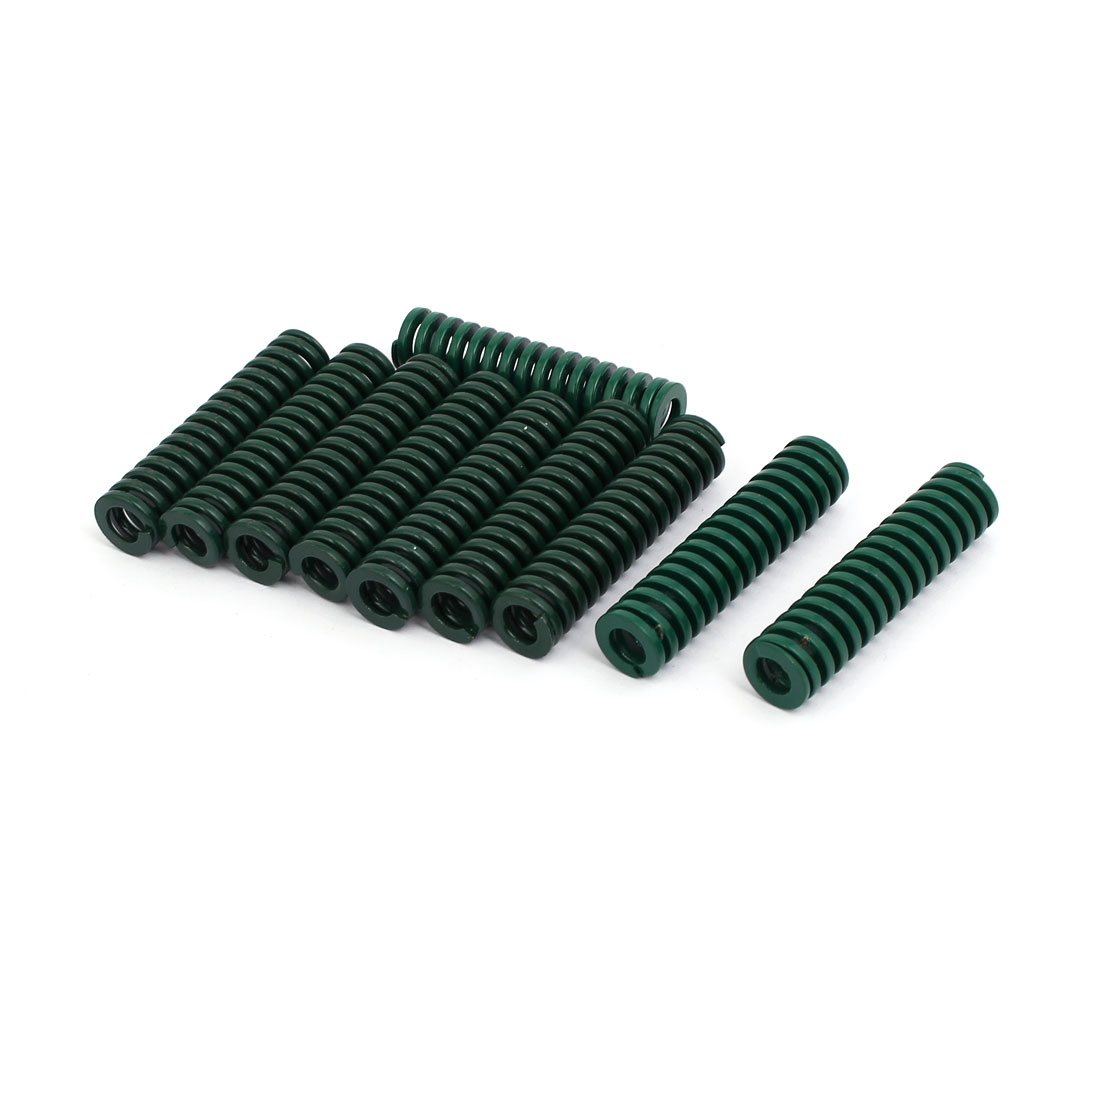 12mm OD 50mm Free Length Heavy Load Compression Mould Die Spring Green 10pcs